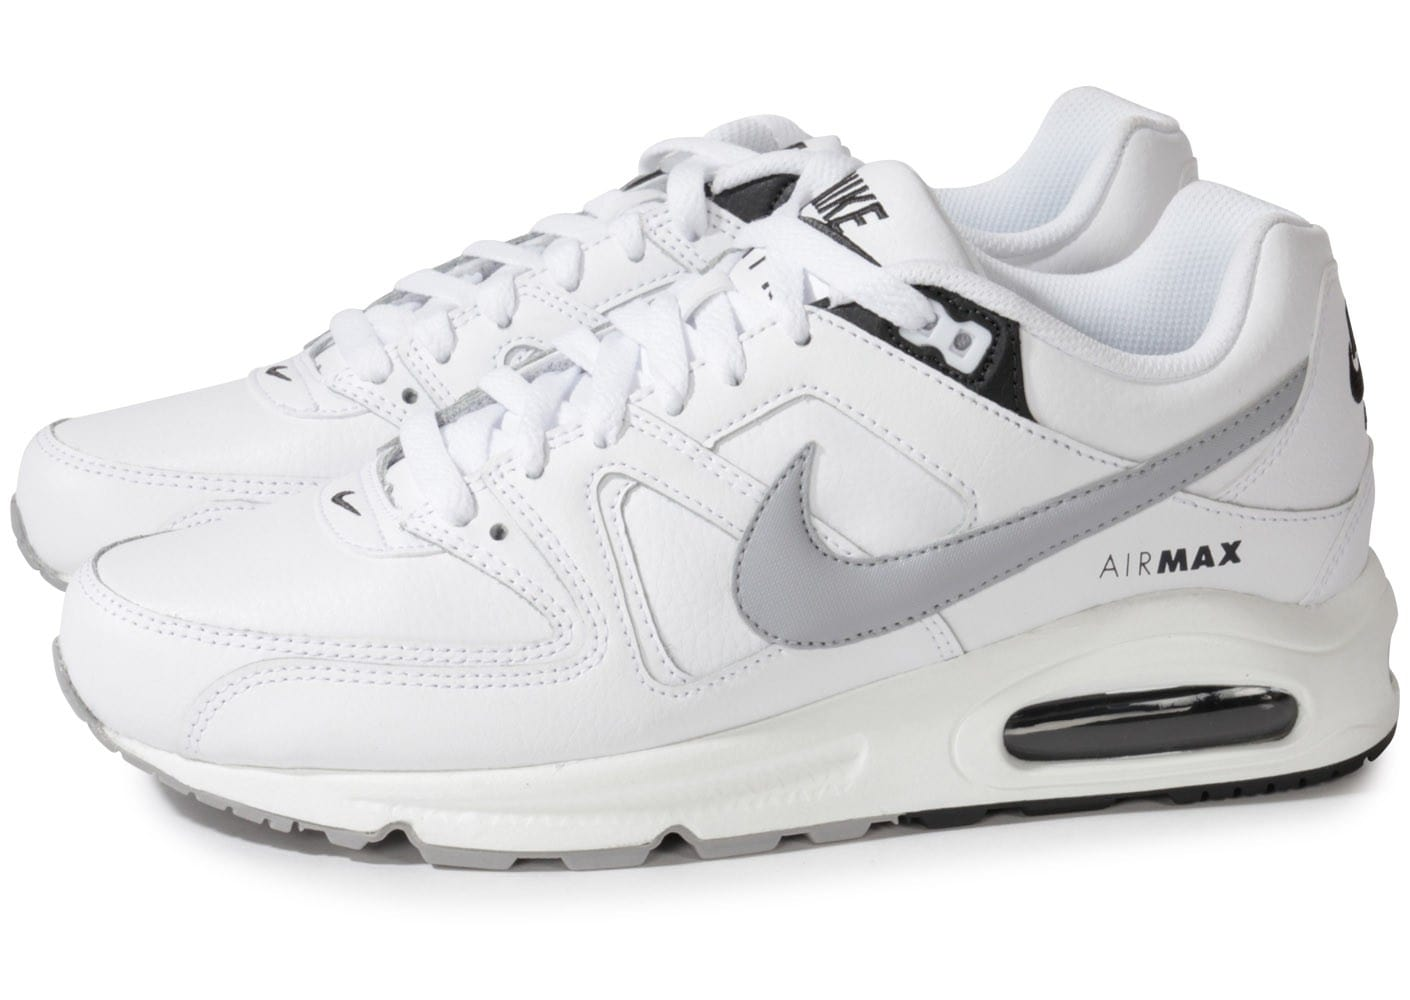 nike air max command blanche chaussures homme chausport. Black Bedroom Furniture Sets. Home Design Ideas